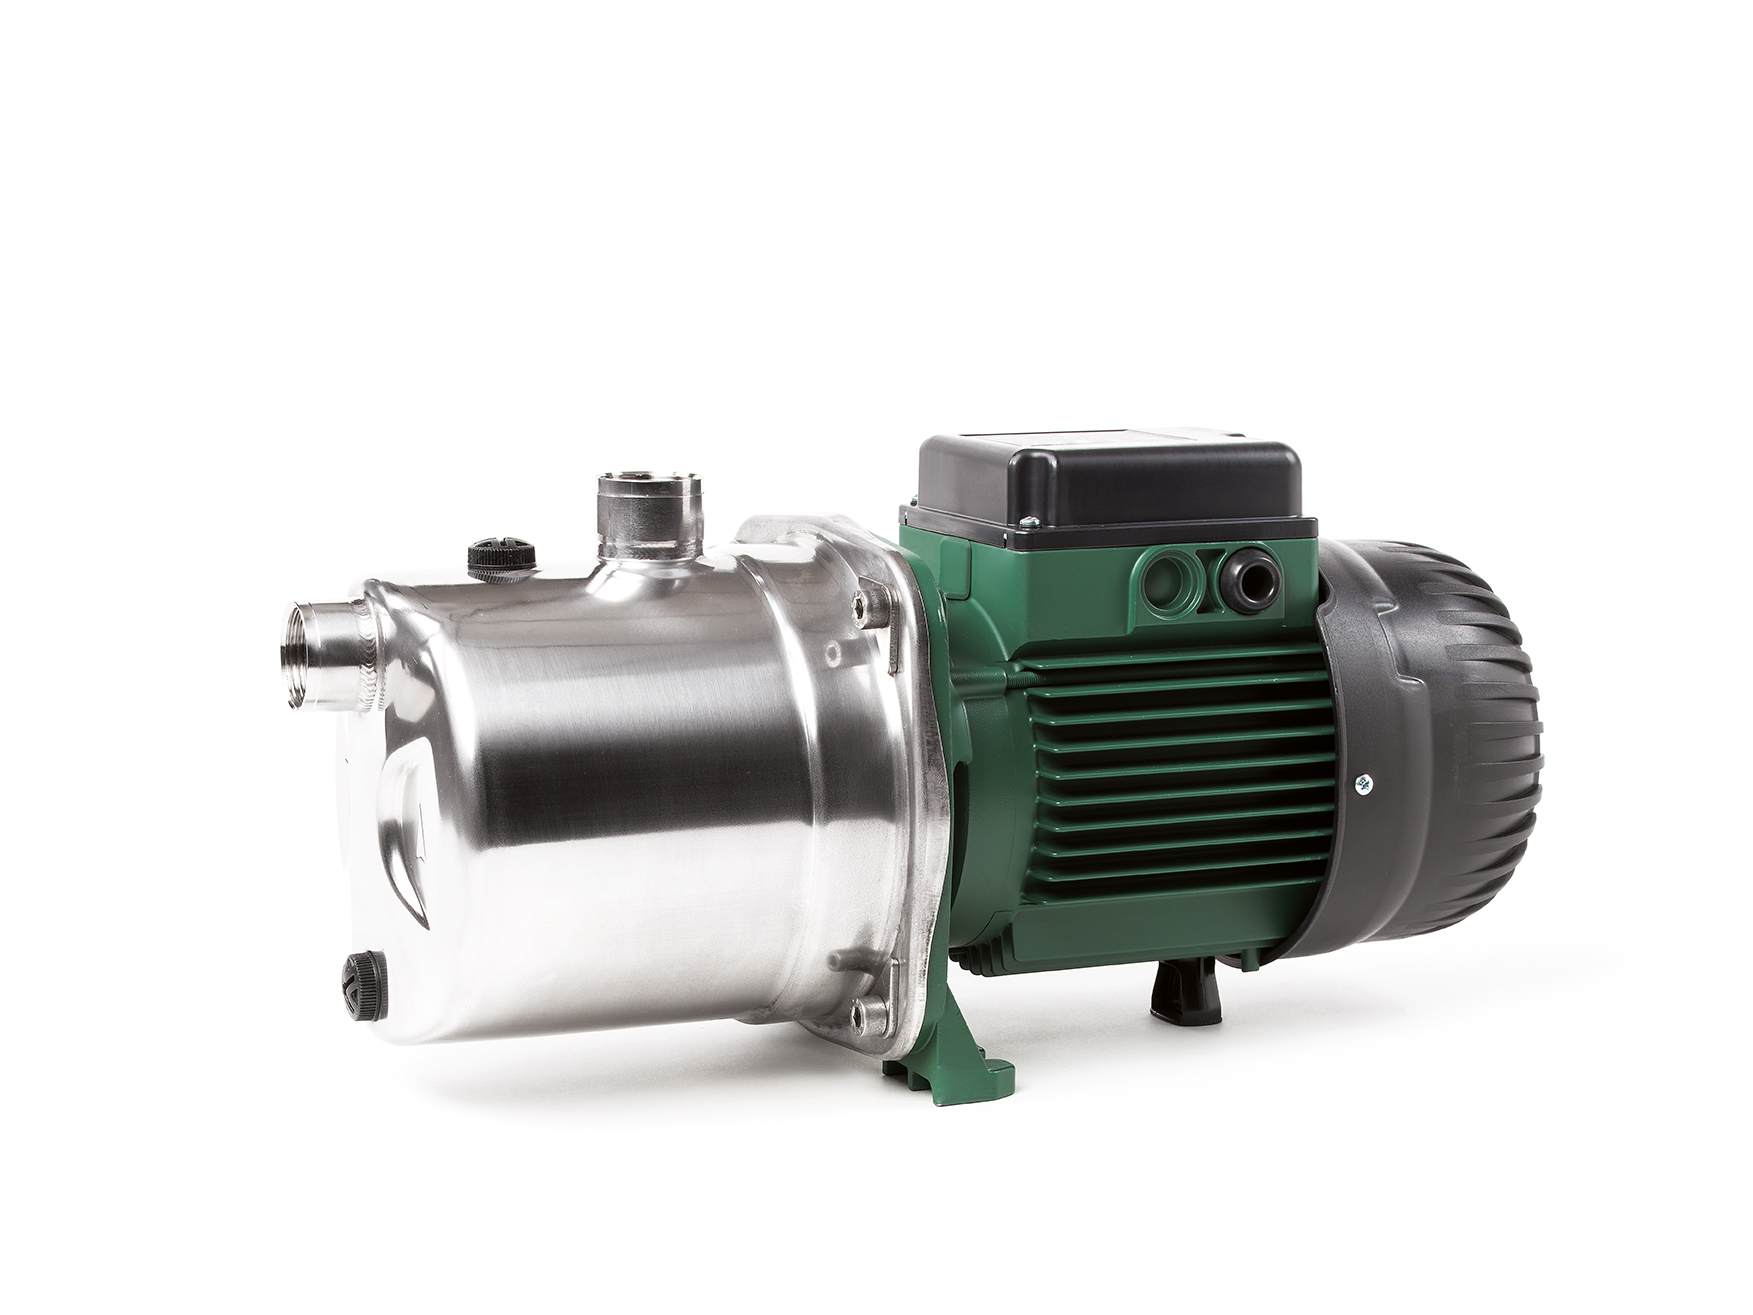 JETINOX 82 M DAB Self-priming Centrifugal Electric-pump Single phase stainless steel 0.8 Hp